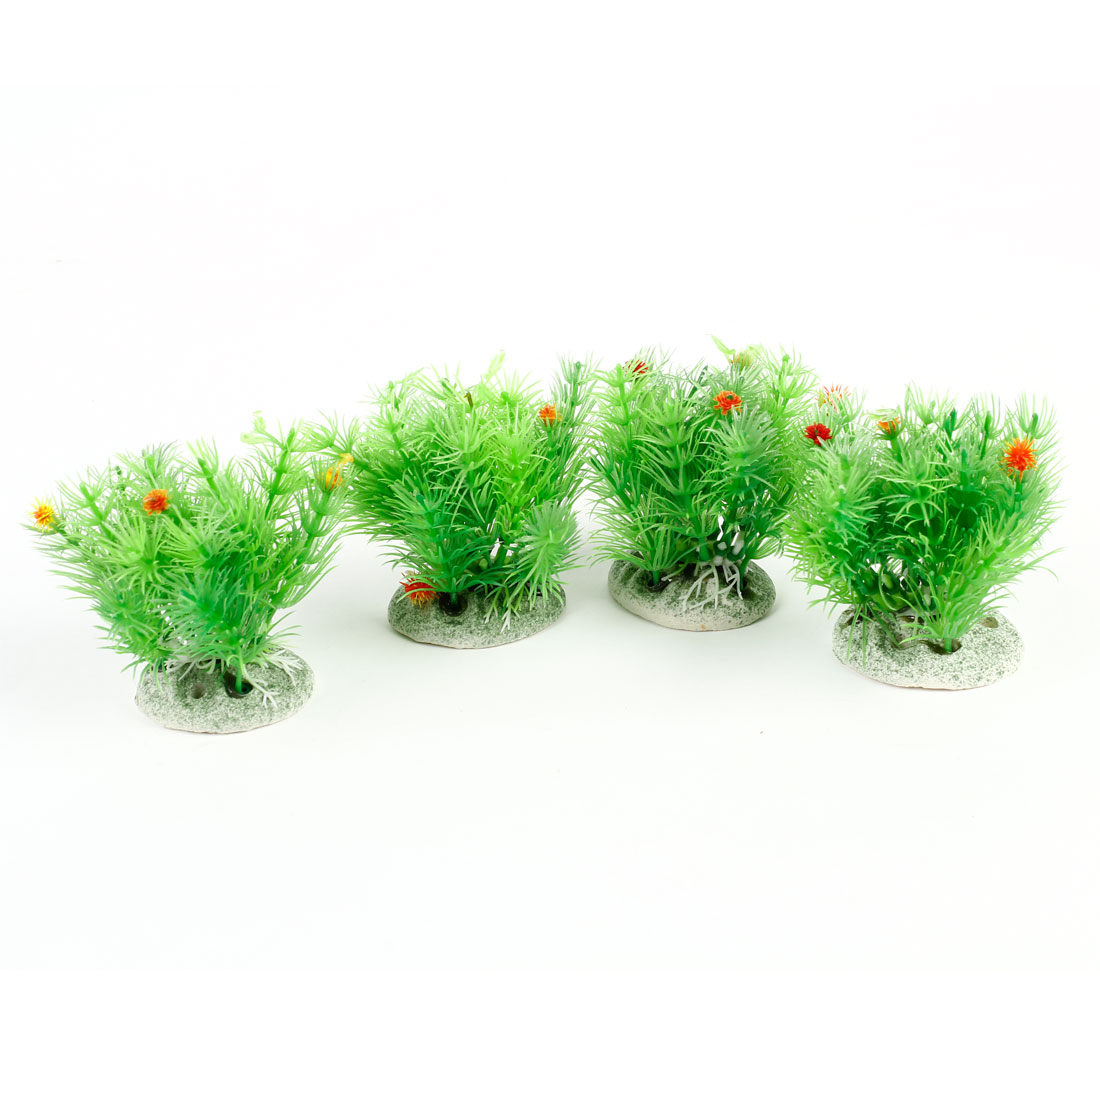 4 Pcs Flowers Decor Green Plastic Aquariums Water Plant Ornament for Fish Tank